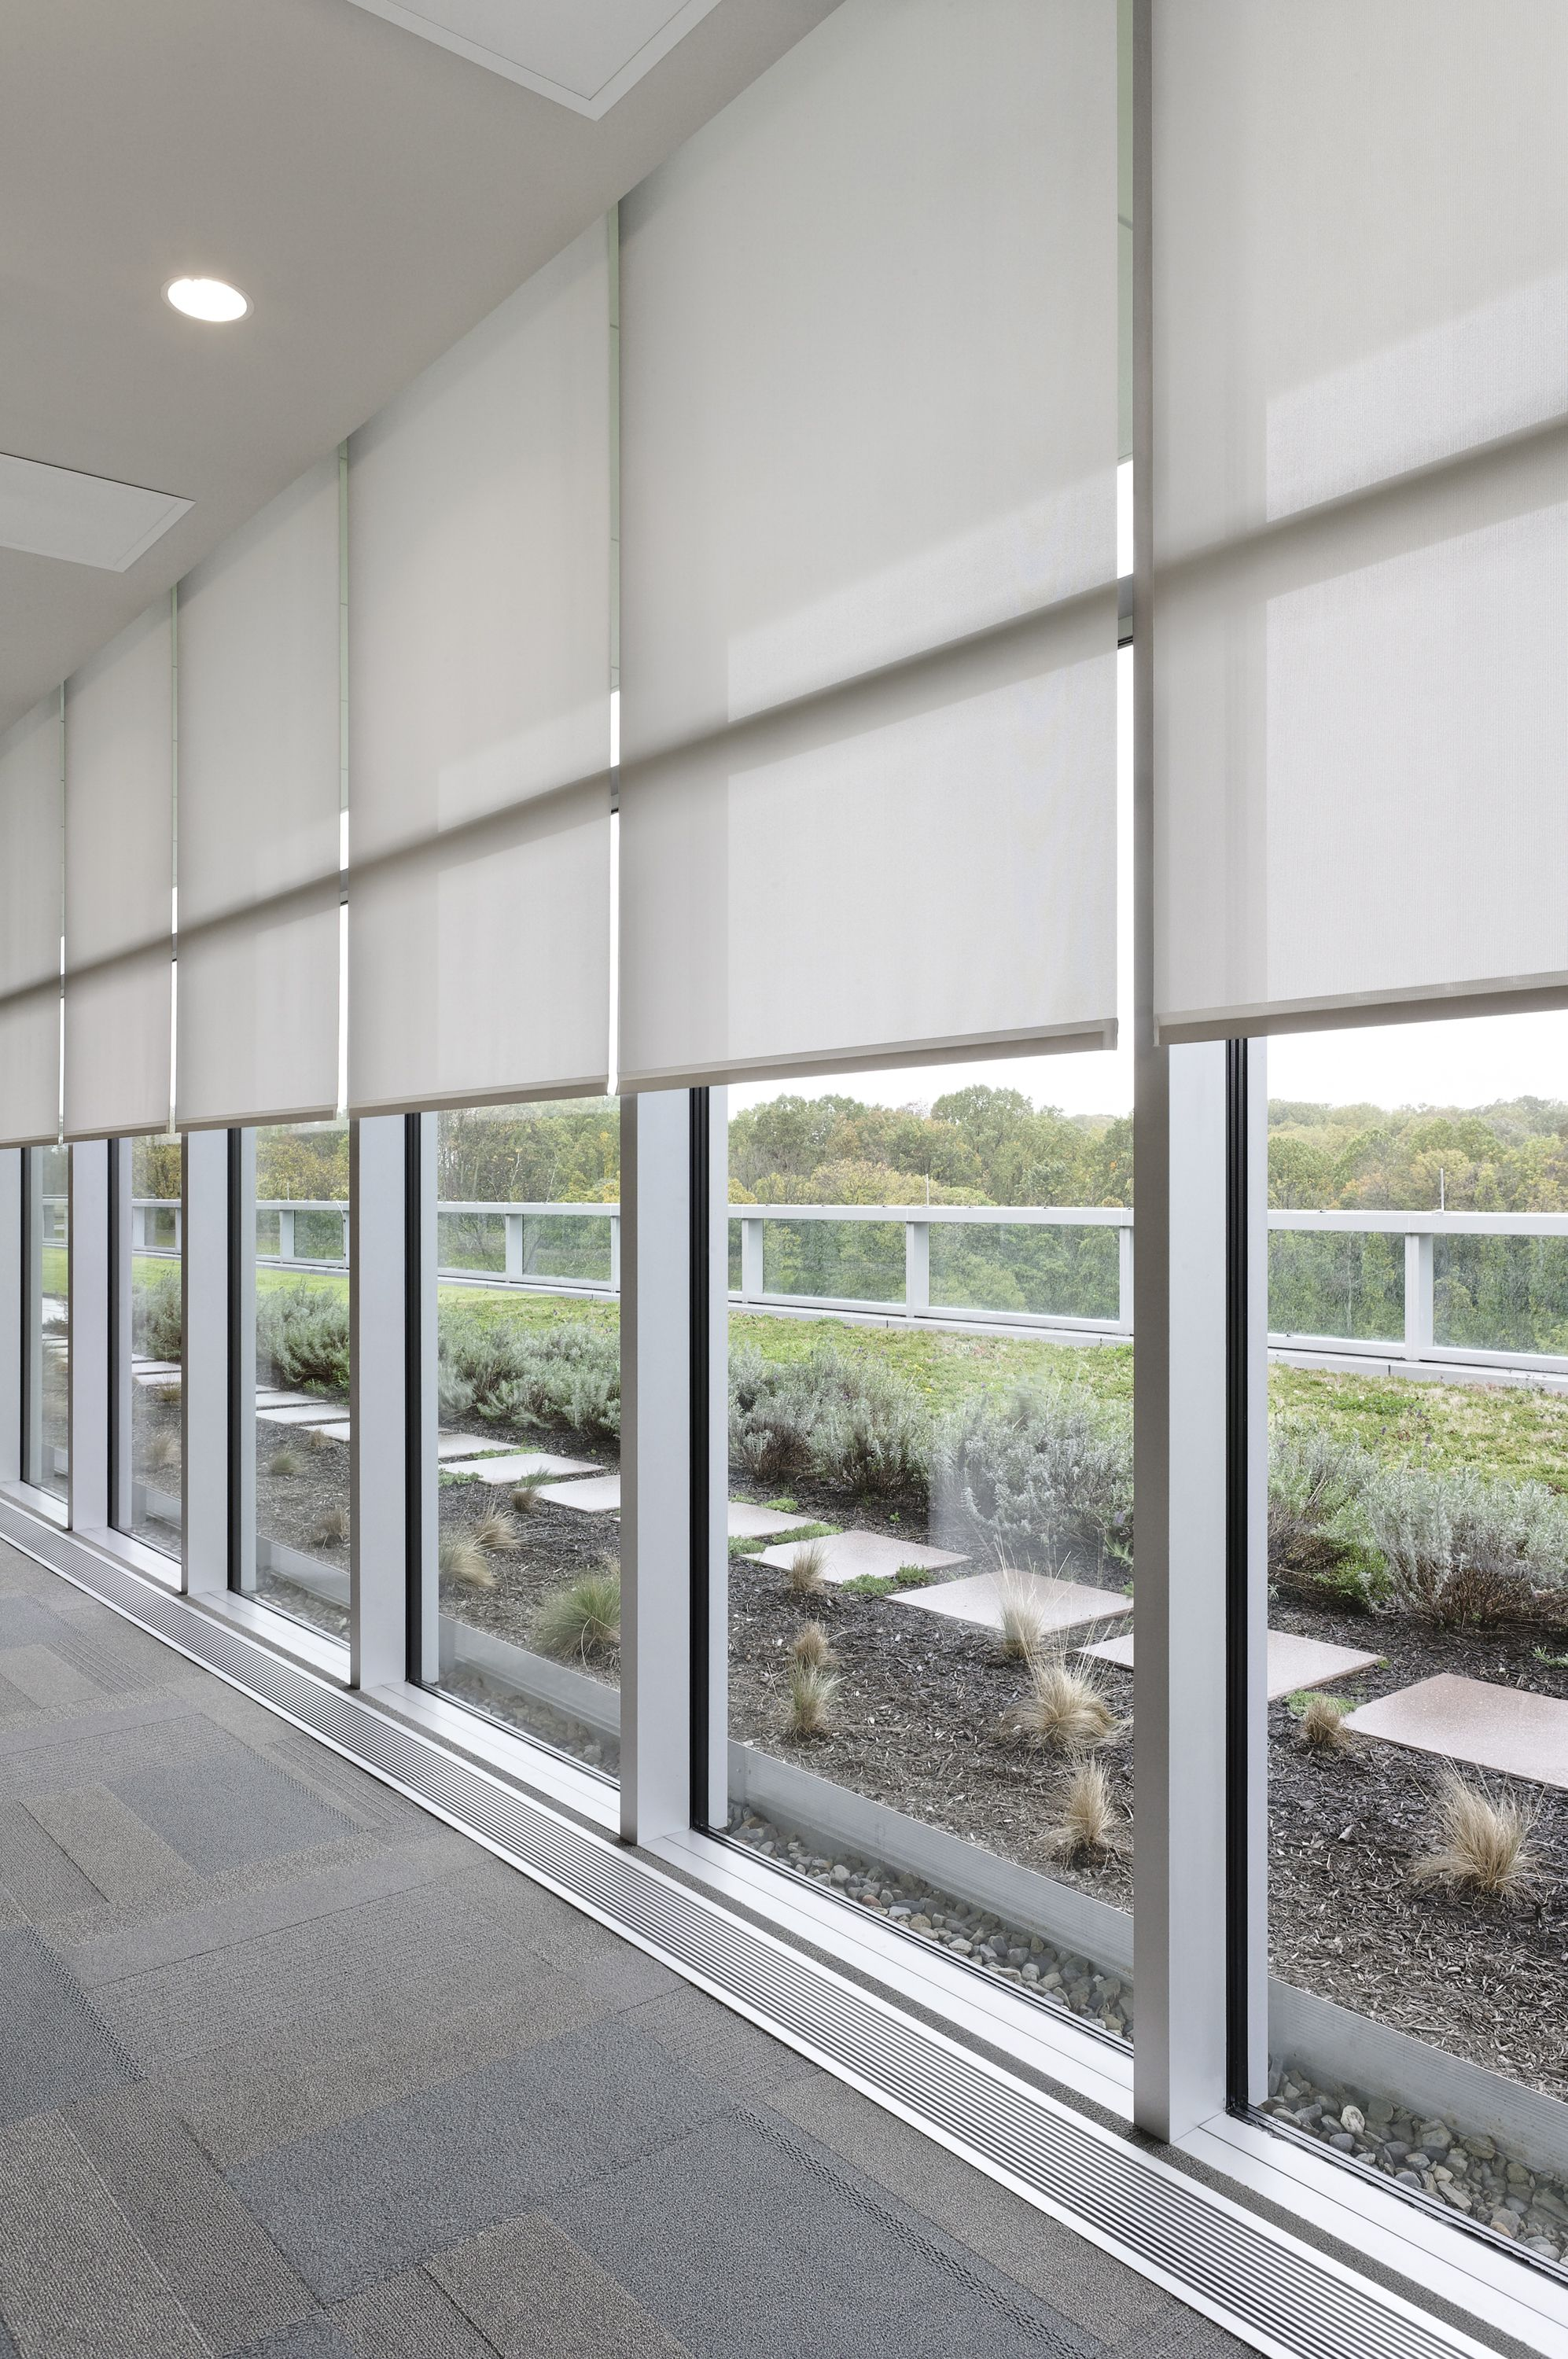 Lutron Motorized Roller Shades Office Blinds Shades Blinds Roller Shades